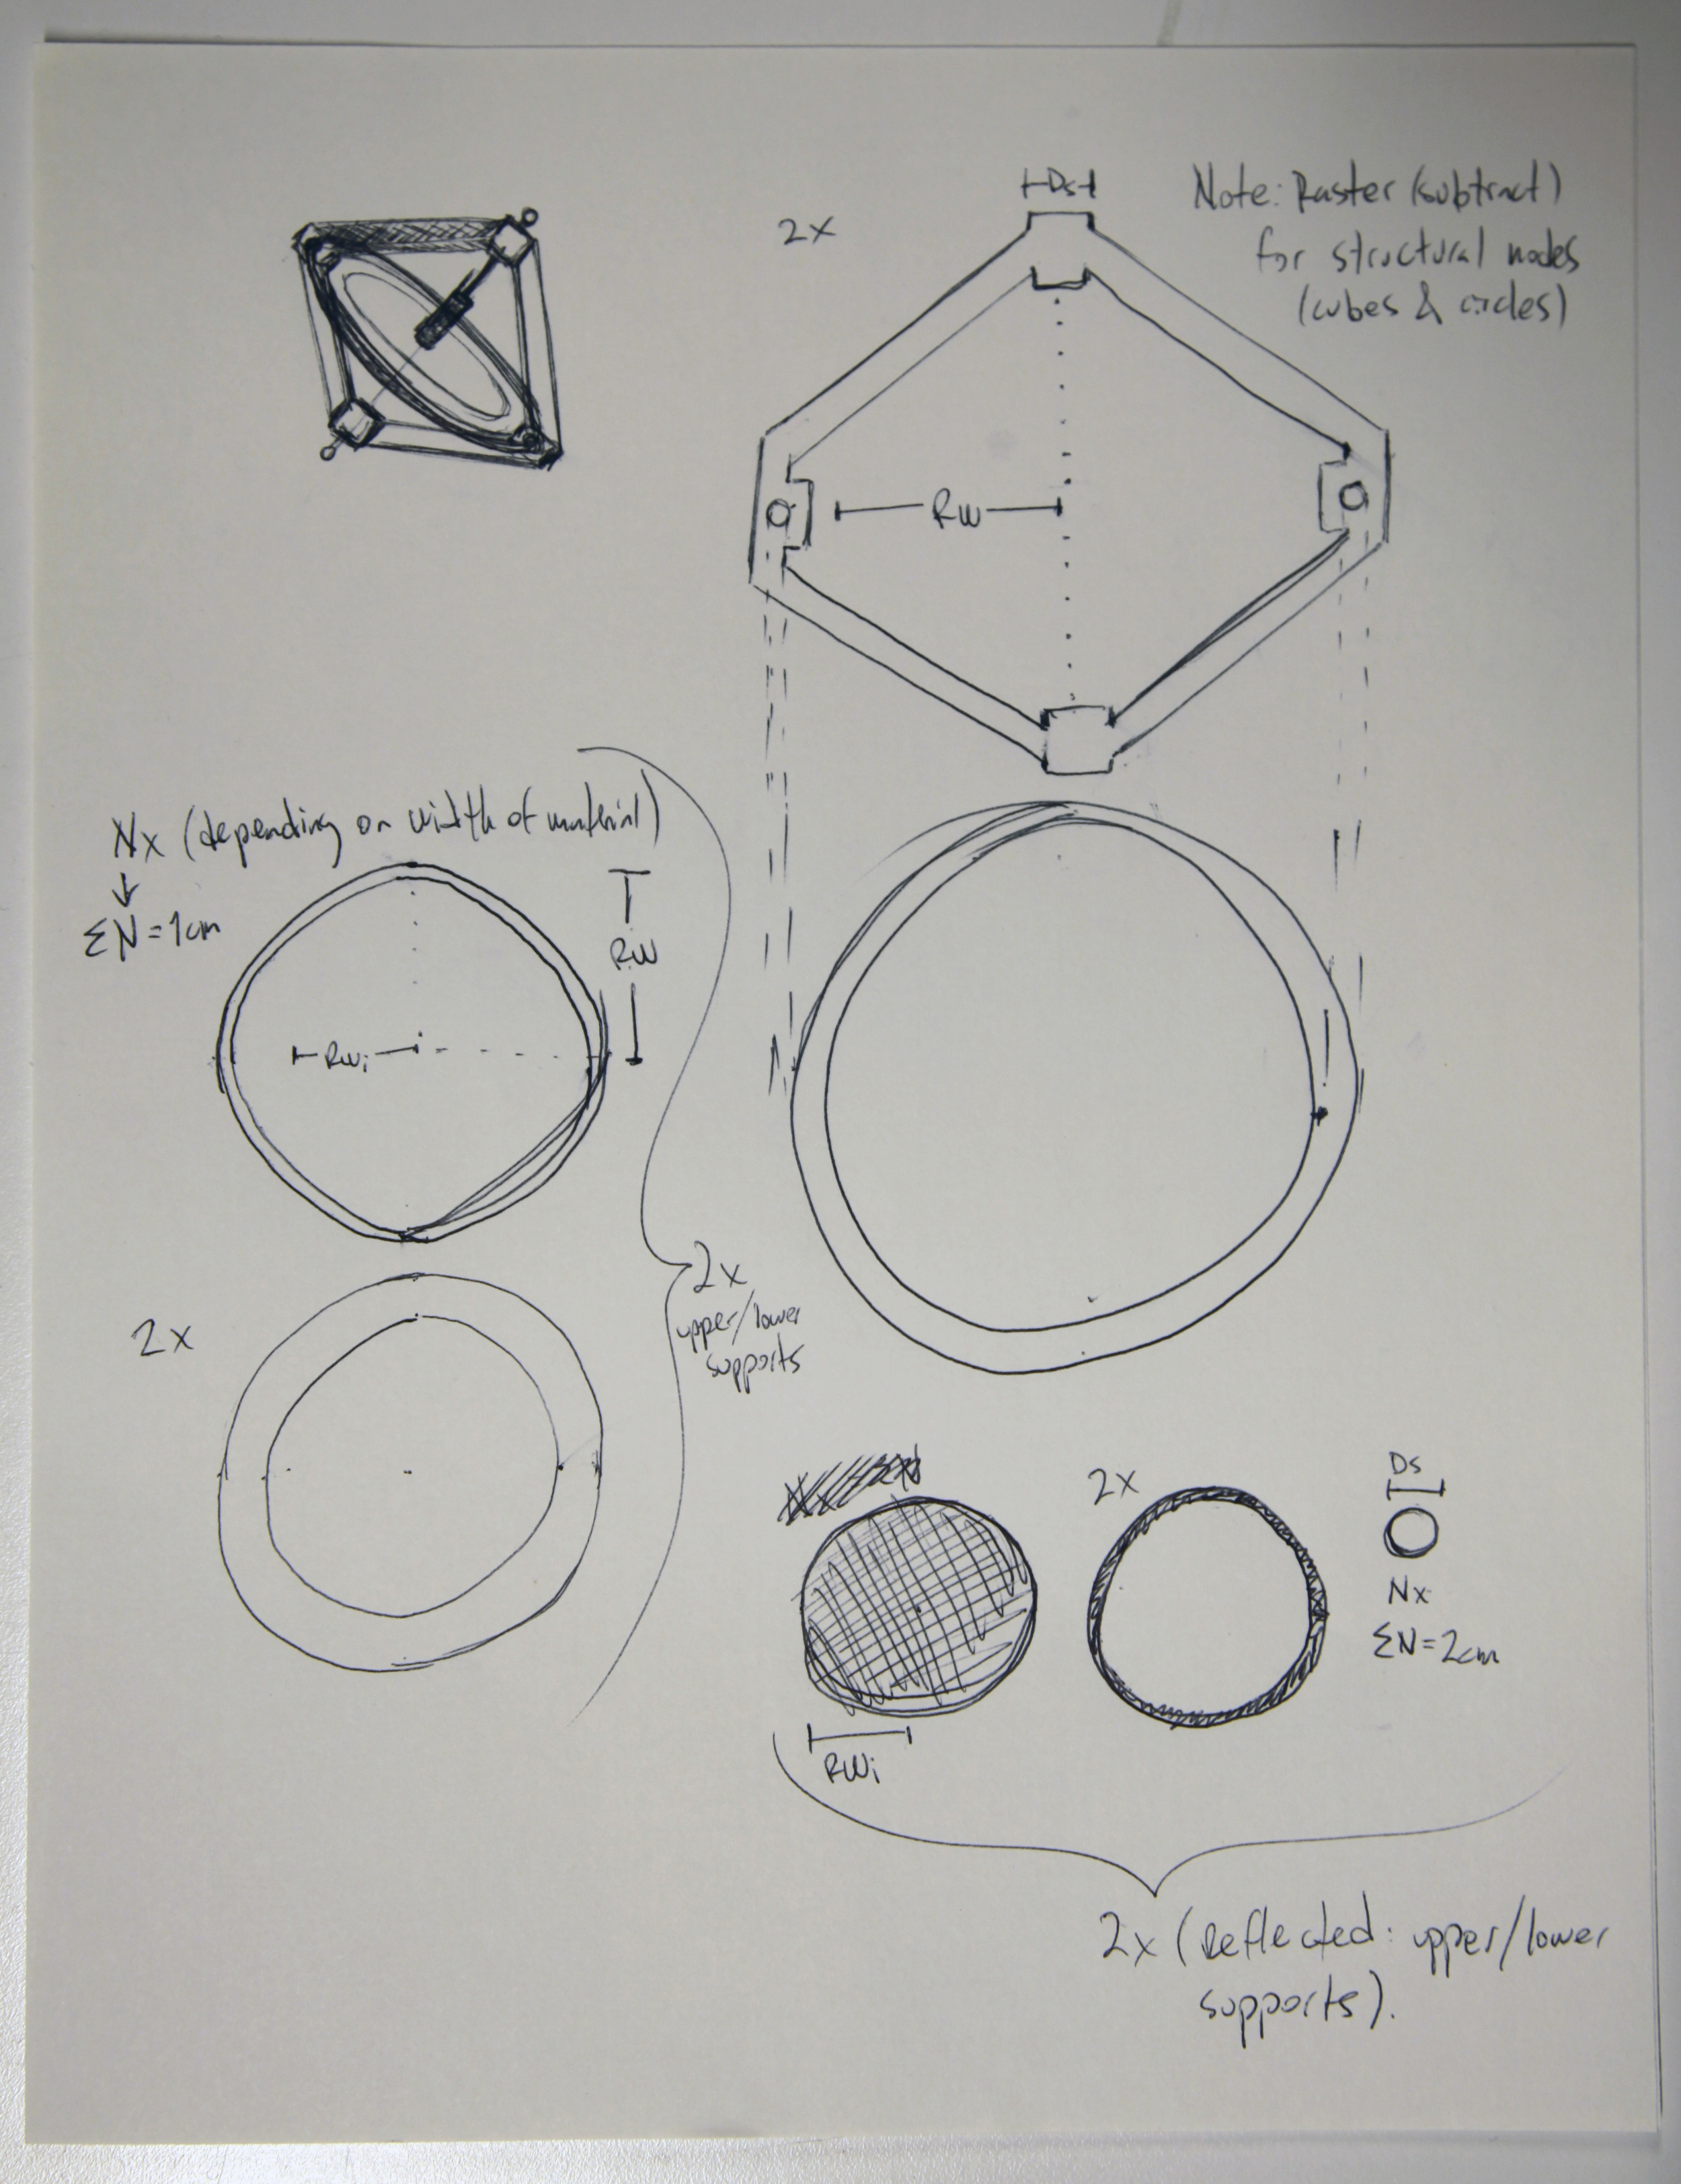 The overall shapes could be any type of wood, the smallest circles though –Ds diameter– should be a hard wood to ensure a smoother spin for the center load.